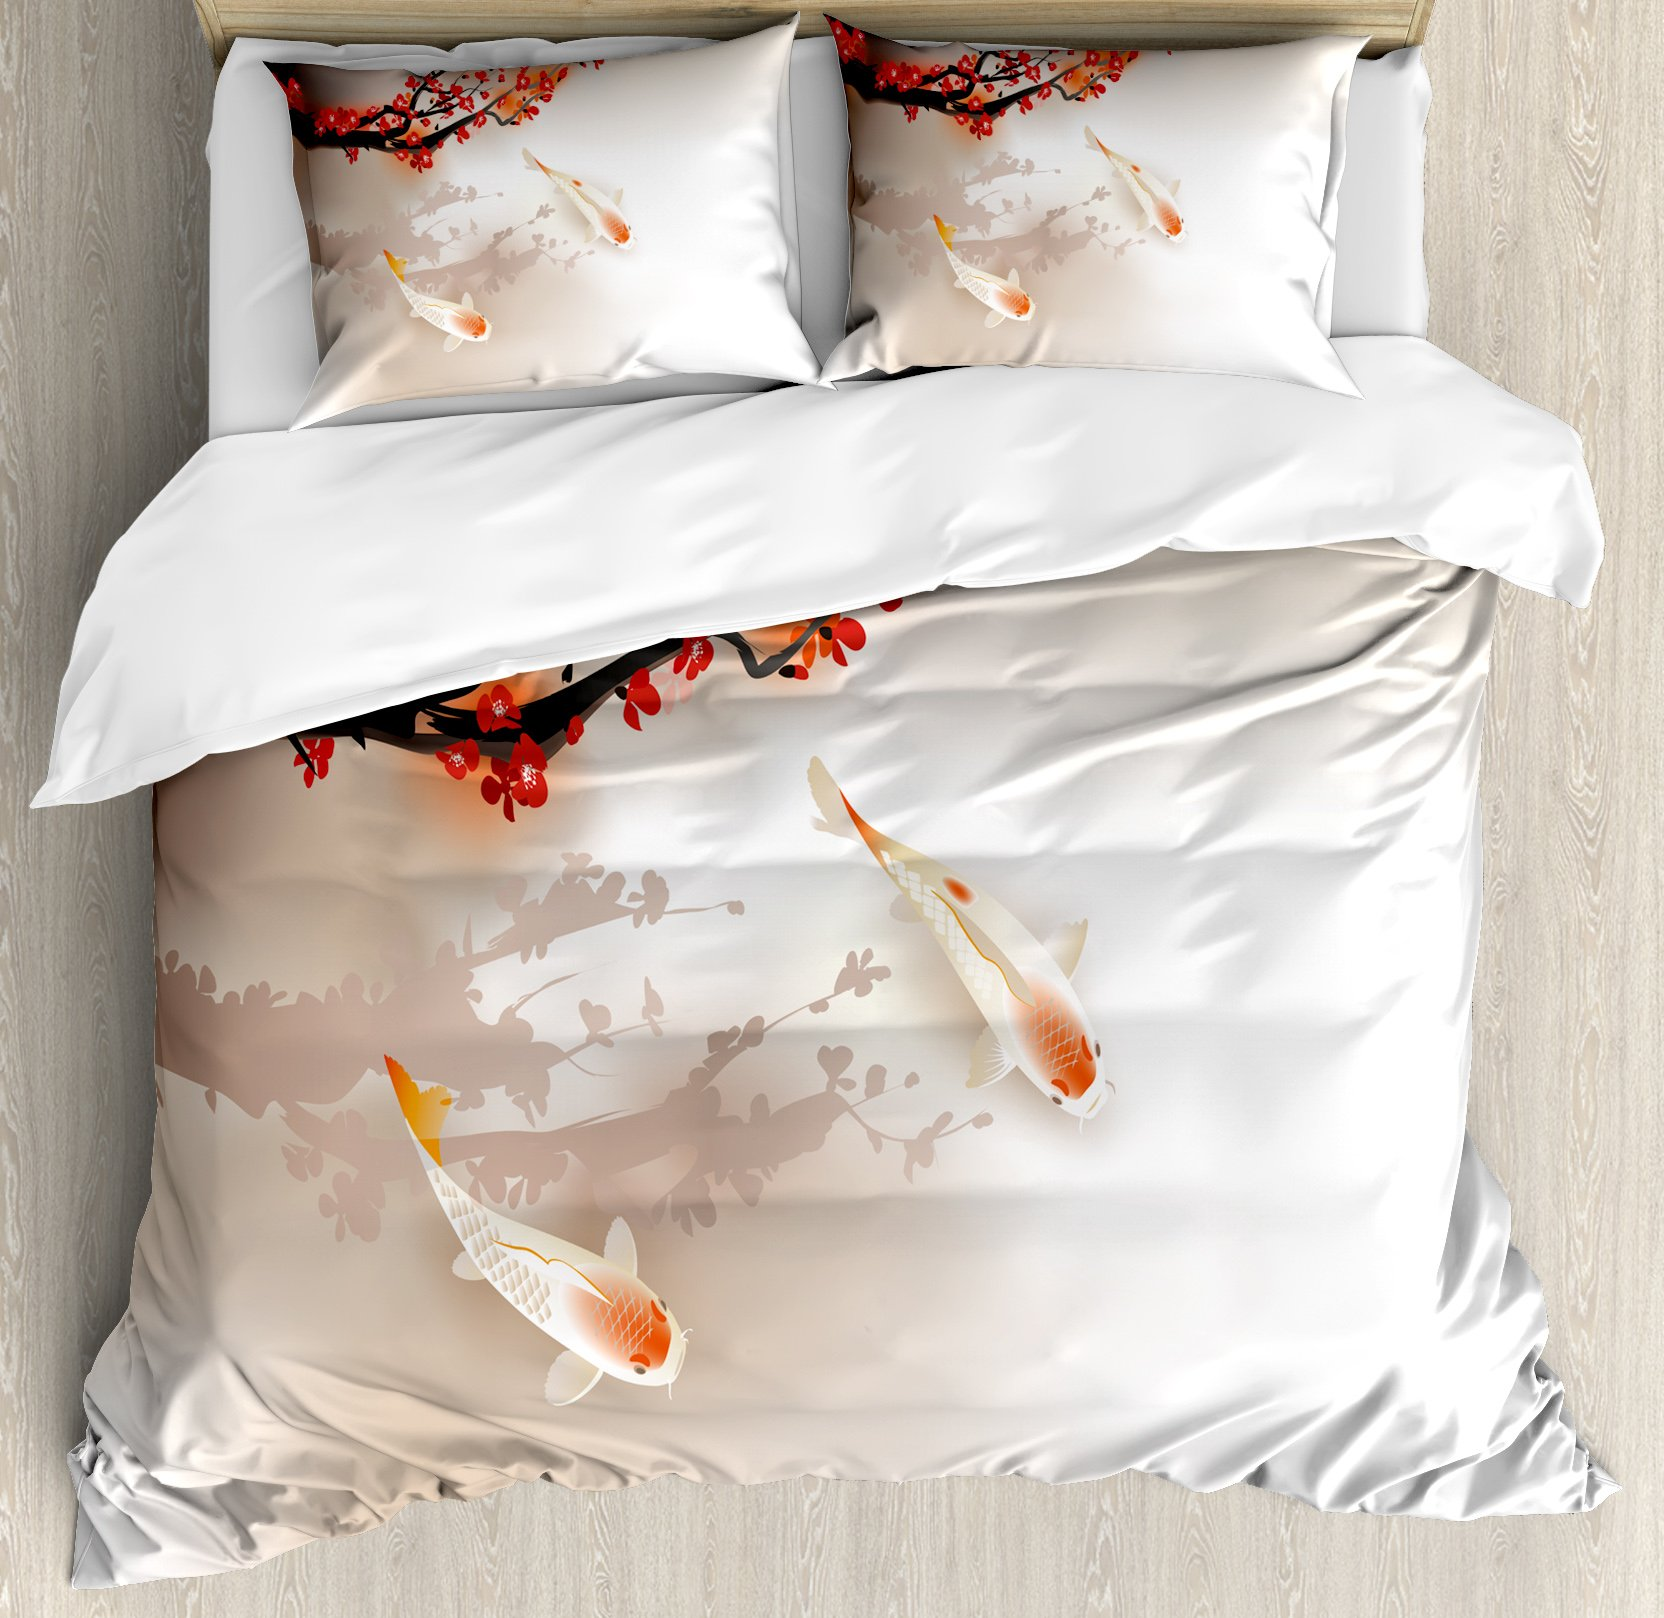 Lunarable Koi Fish Duvet Cover Set King Size by, Sakura Branch and Leaves Sacred Animals in Small Body of Water Oriental Style, Decorative 3 Piece Bedding Set with 2 Pillow Shams, Peach Black Red